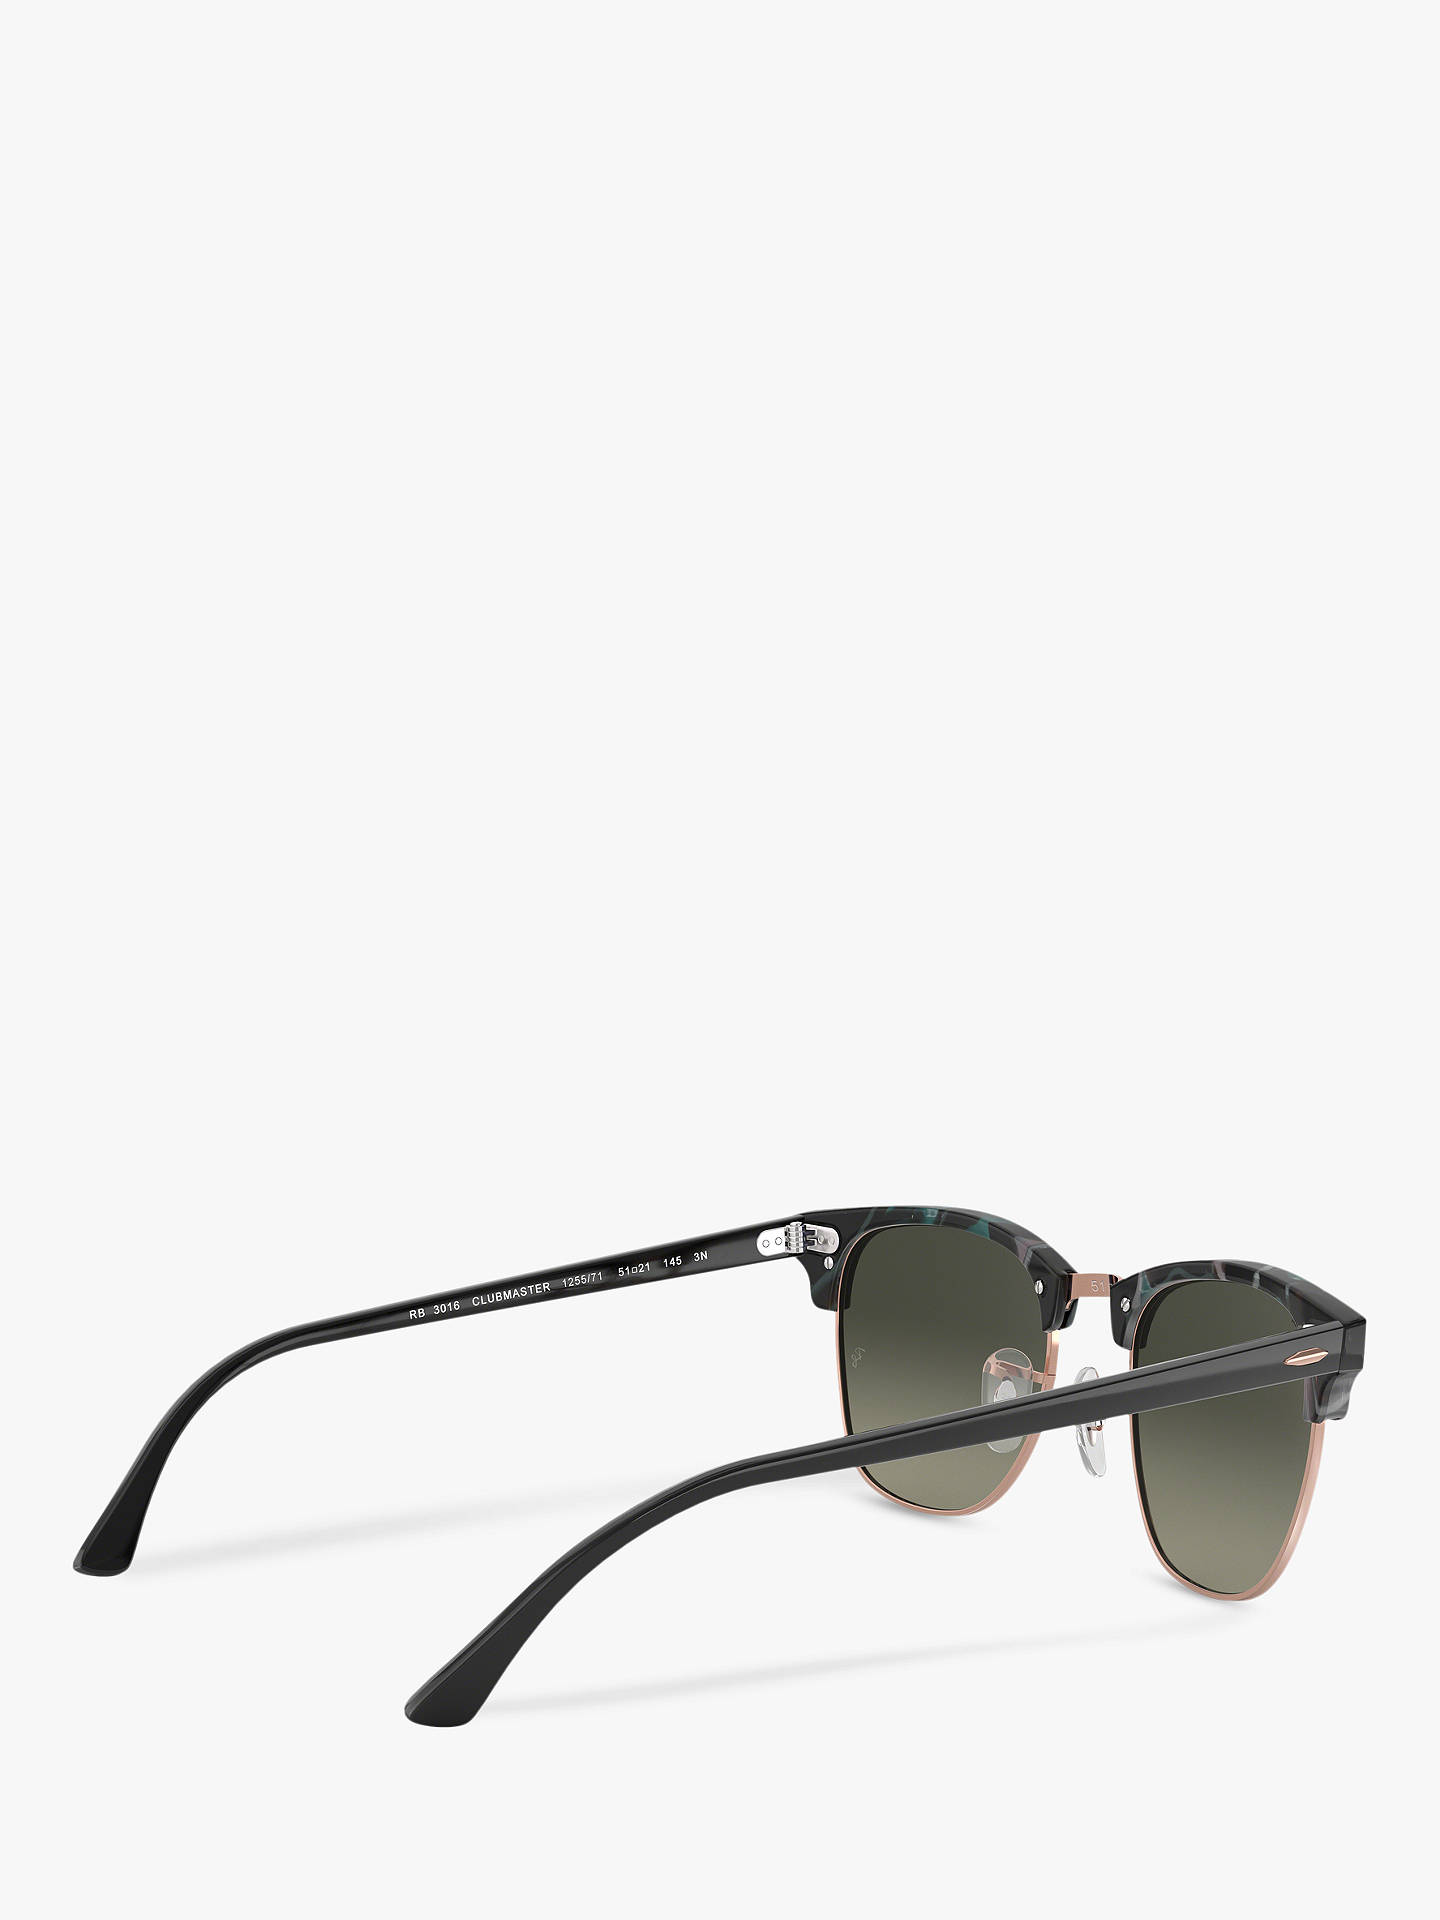 107598abbba ... Buy Ray-Ban RB3016 Clubmaster Square Sunglasses